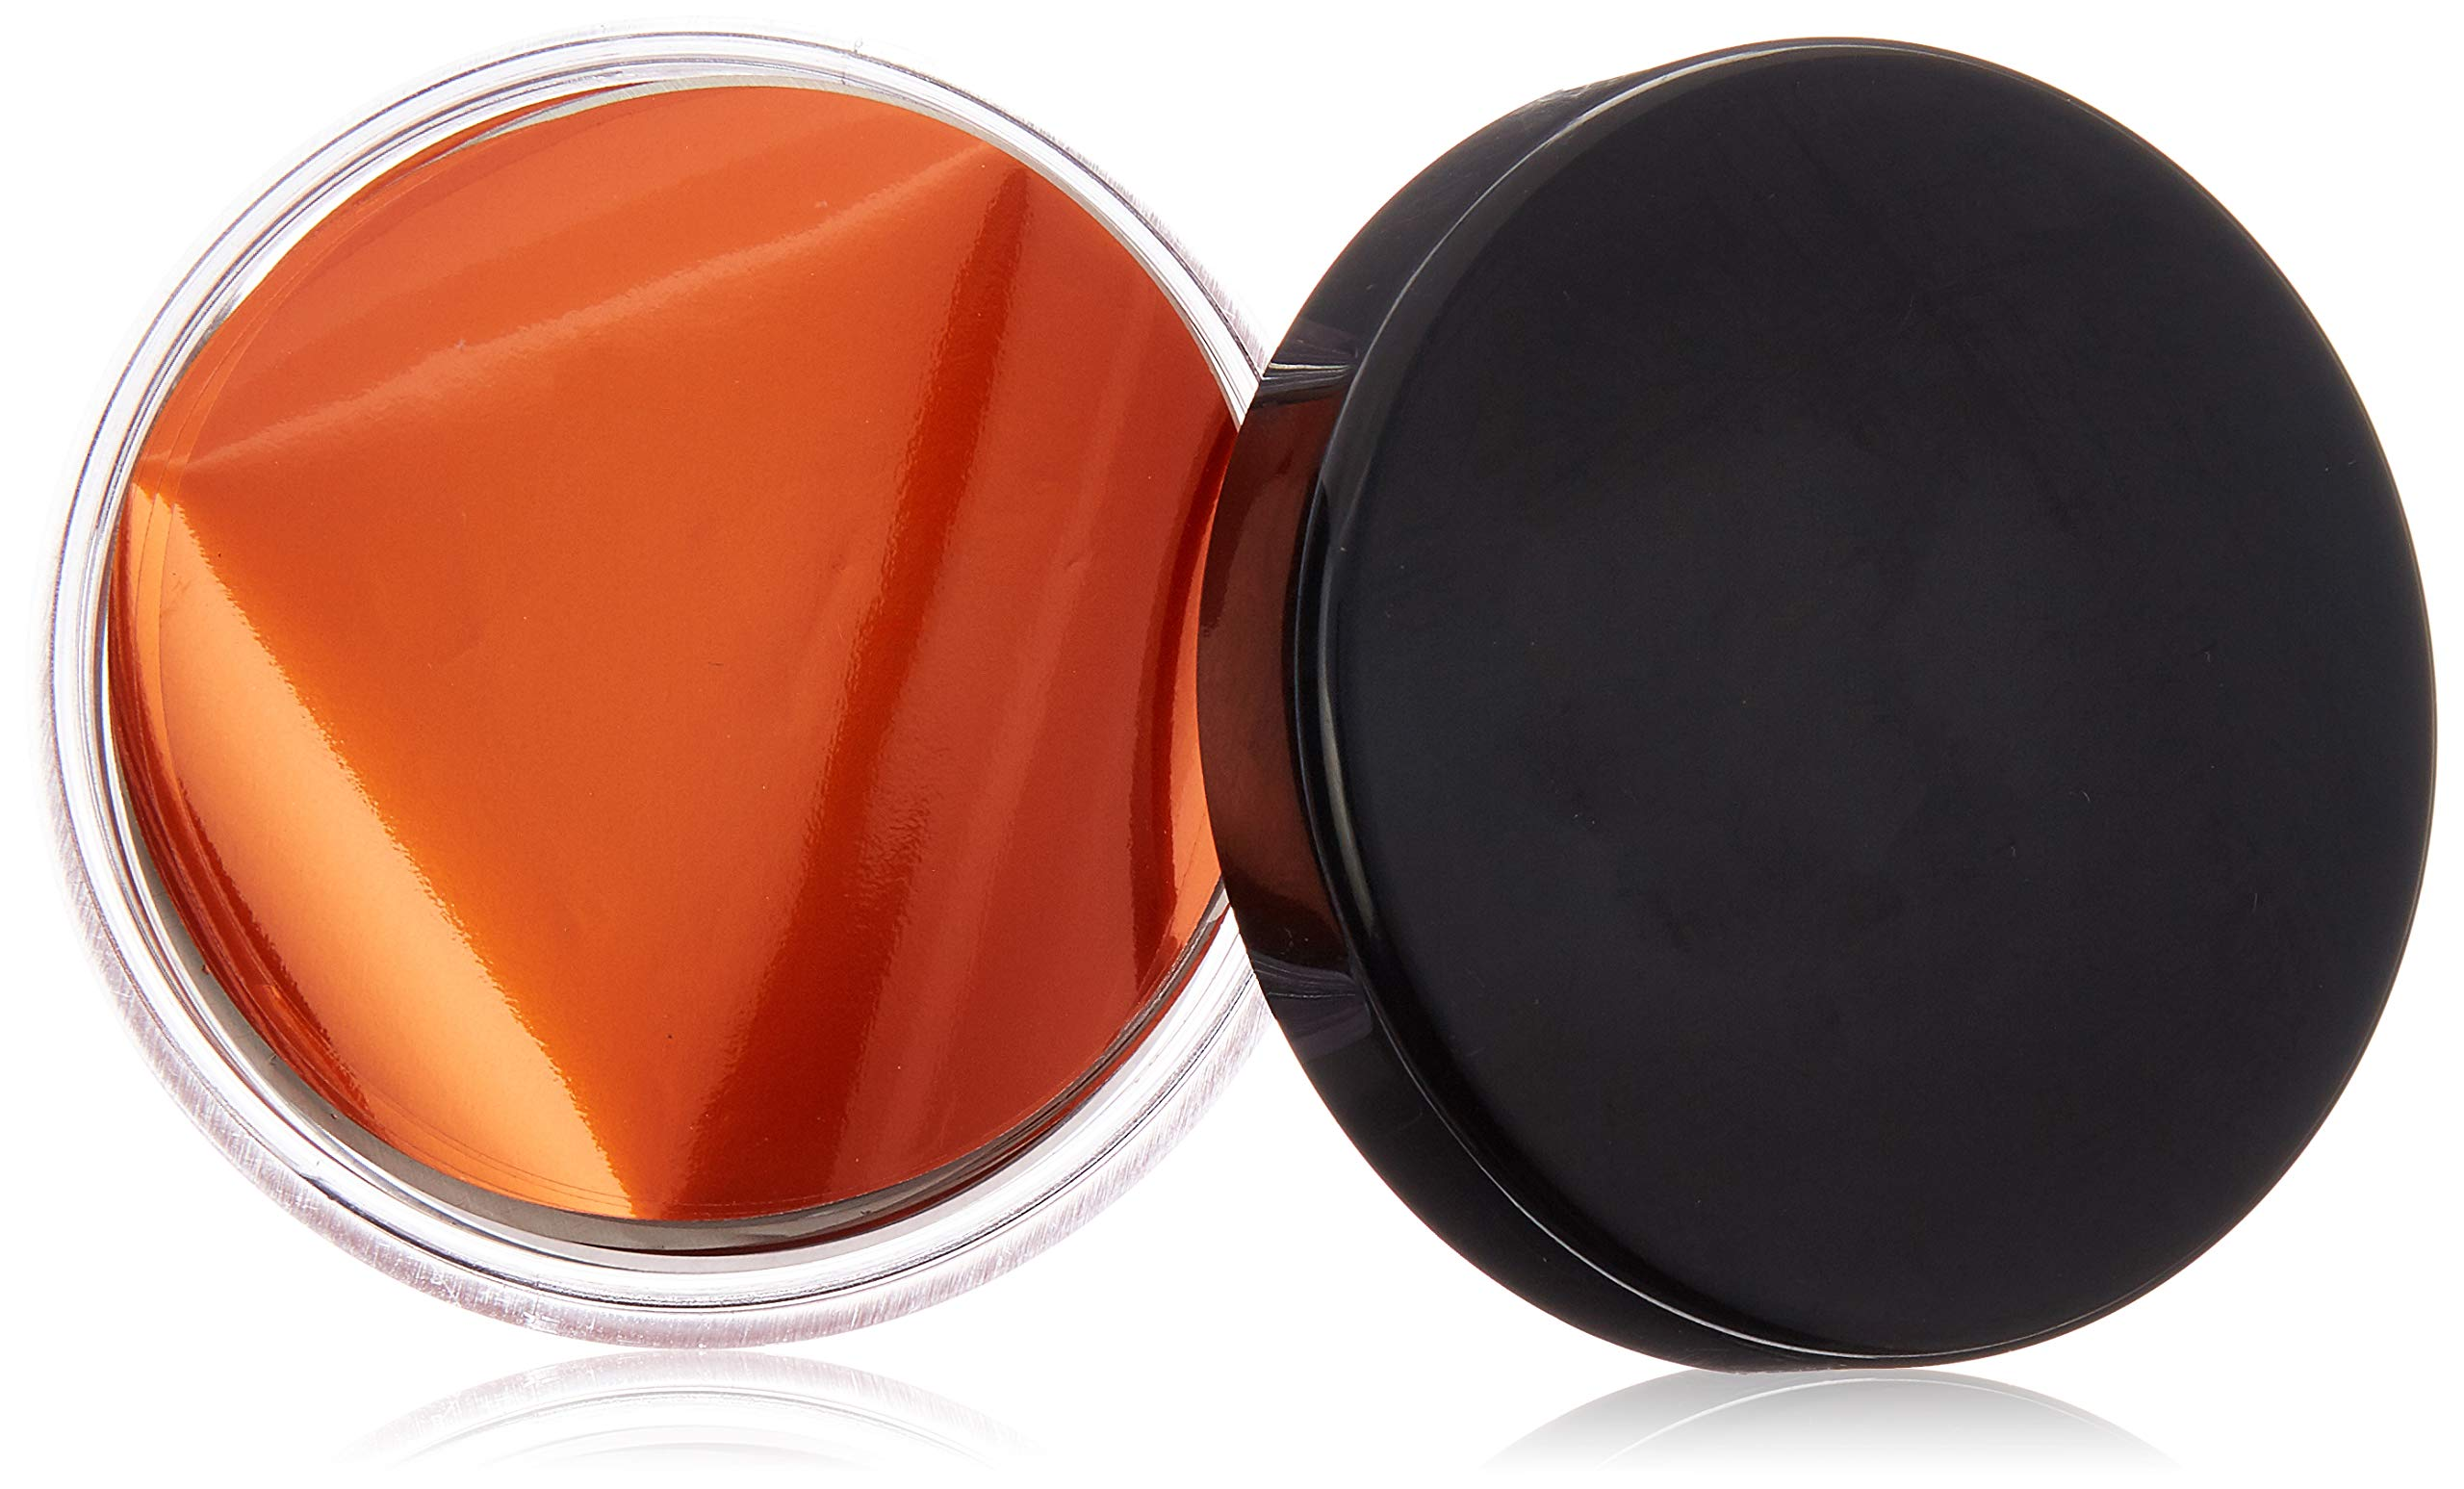 Mettoo Burnt Orange Body Foil Festival Pro, 1000 Count